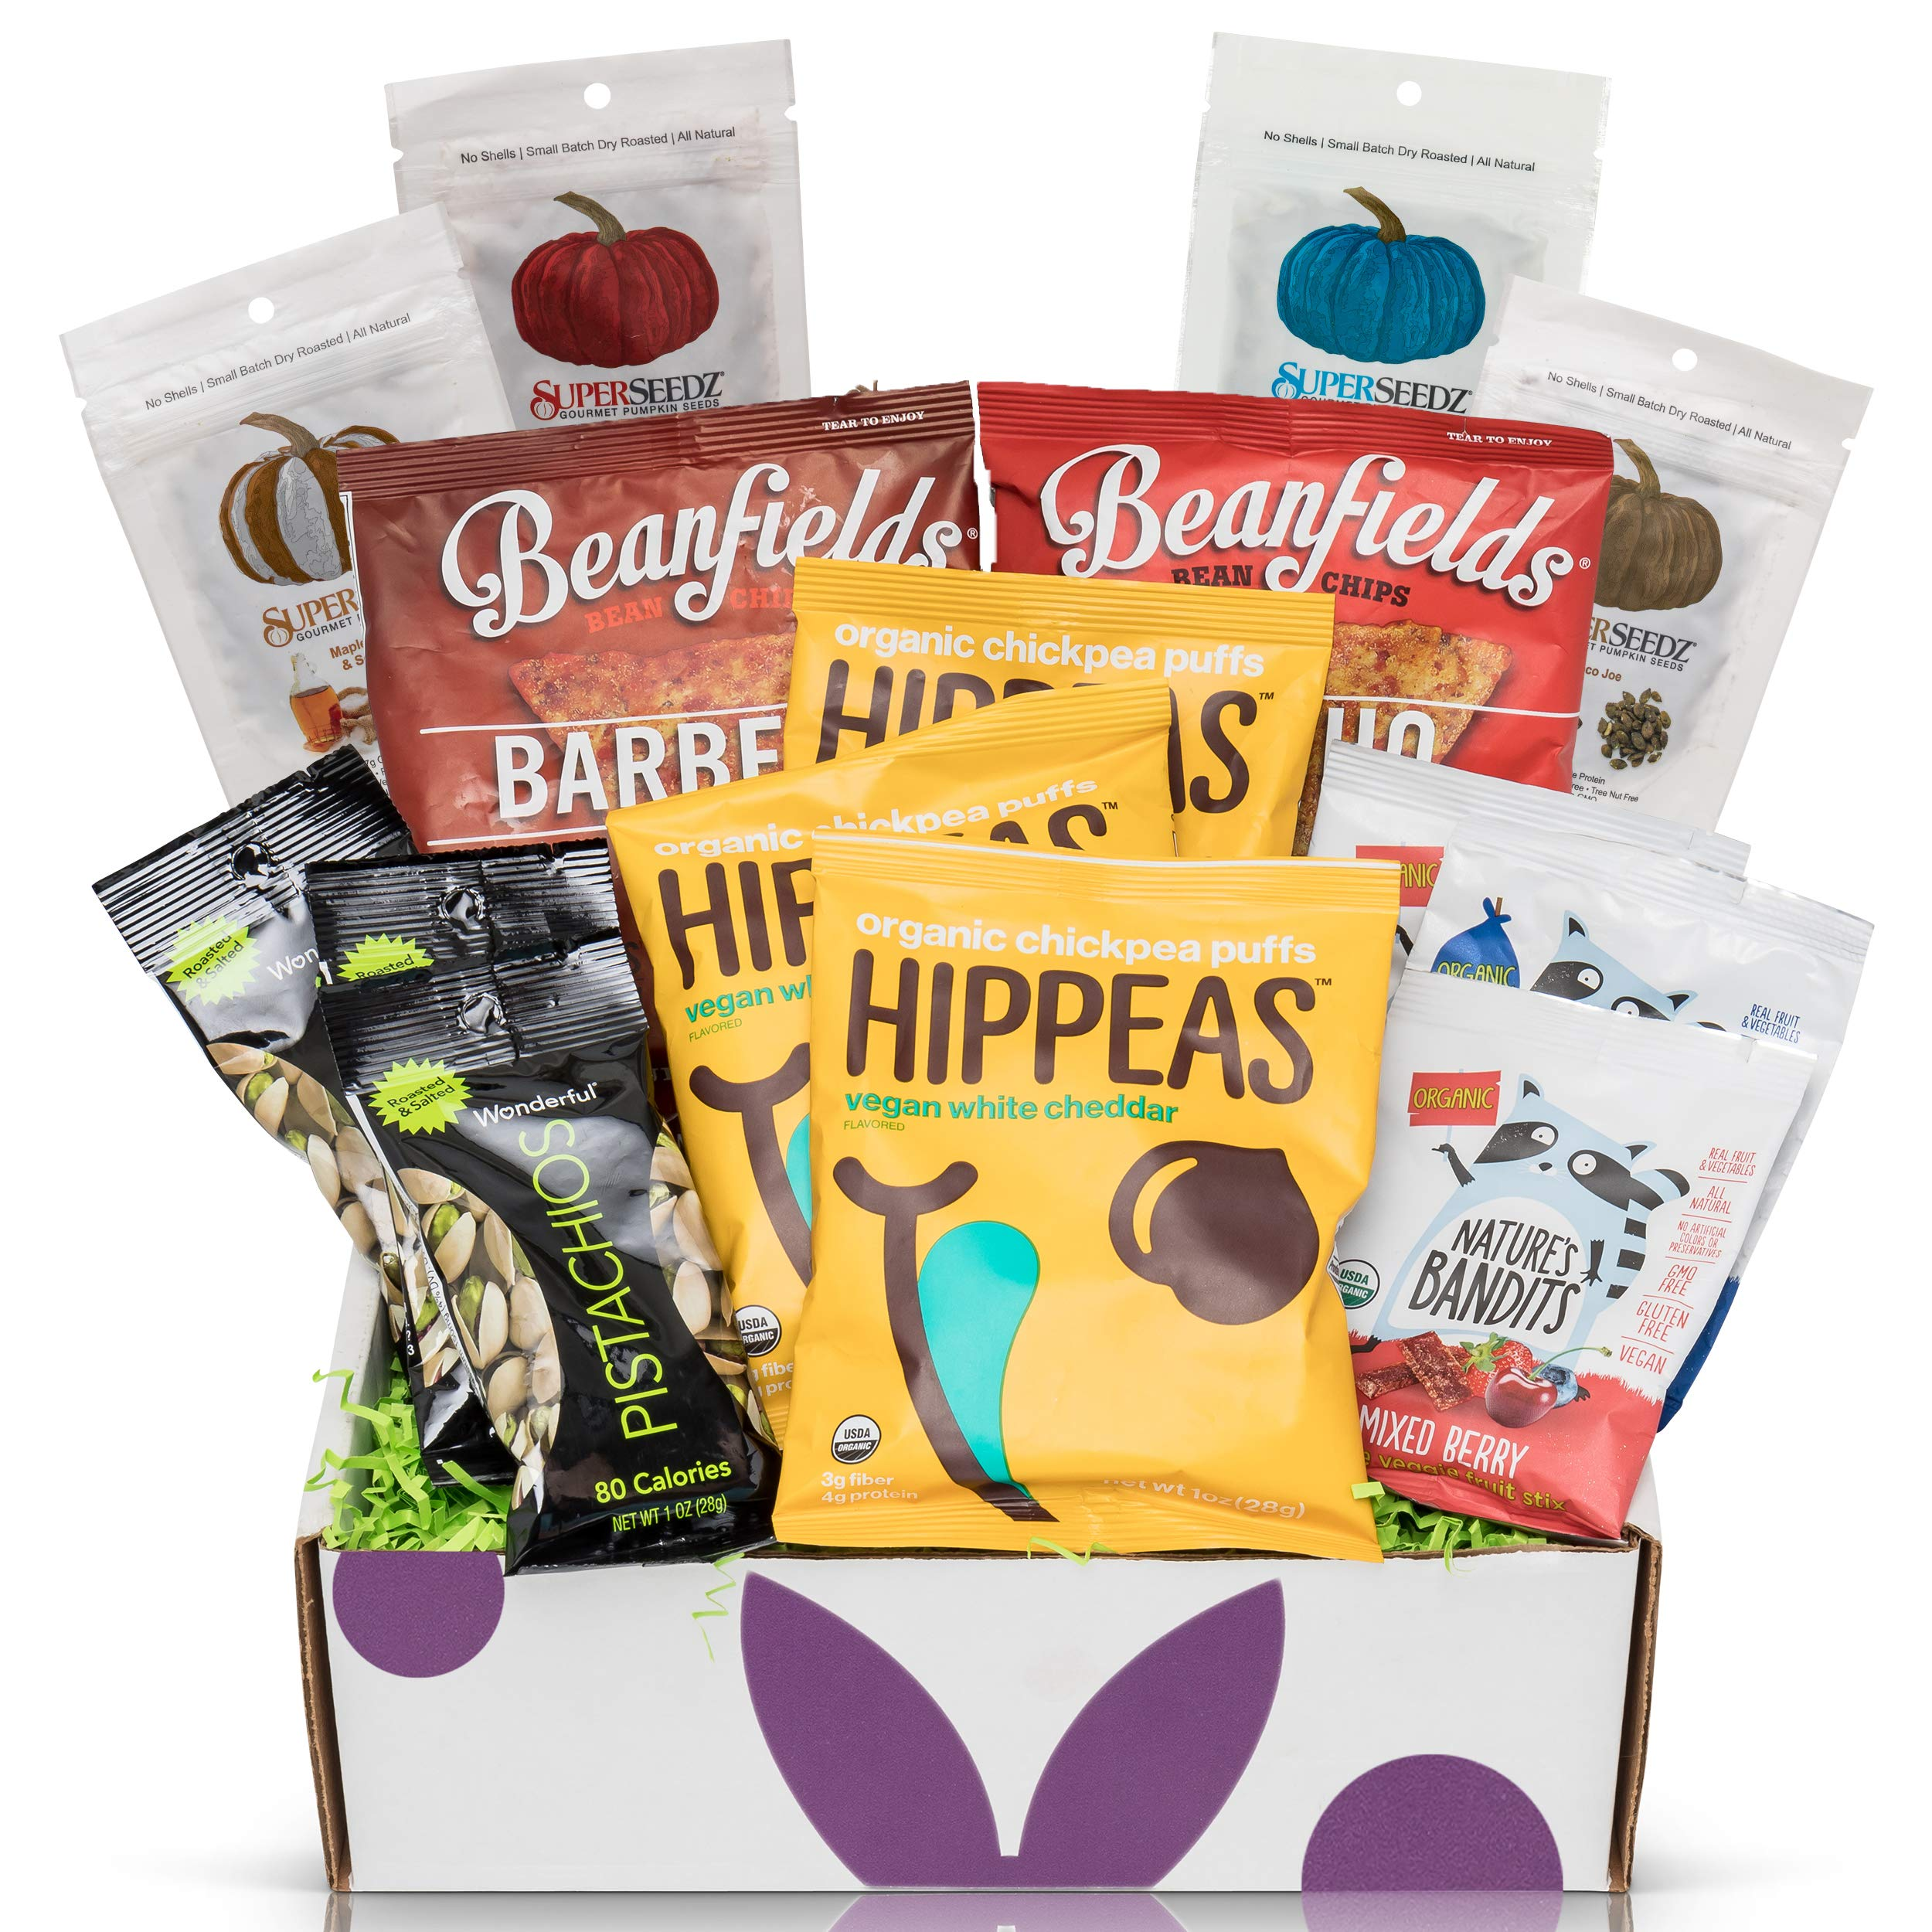 Gluten Free Vegan Chip Box: Variety of Healthy Sweet & Savory Chips - Nuts - Seeds - Fruit Stix - Healthy Care Package Gift Box